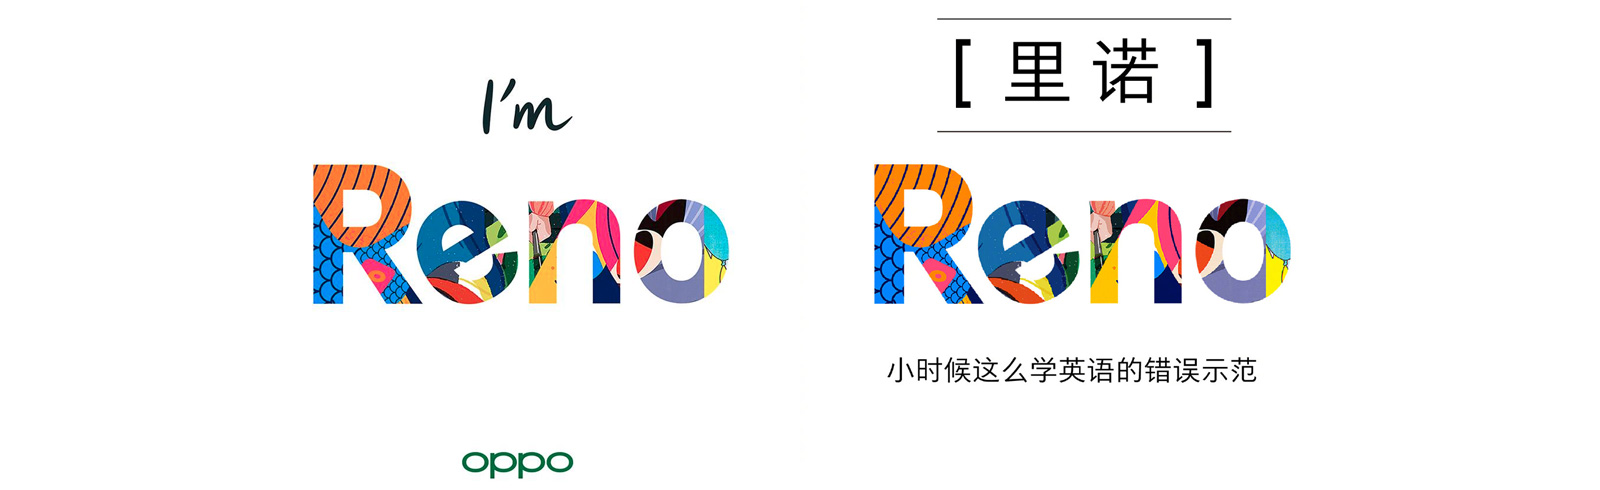 Oppo will announce a new smartphone dubbed Reno in a month